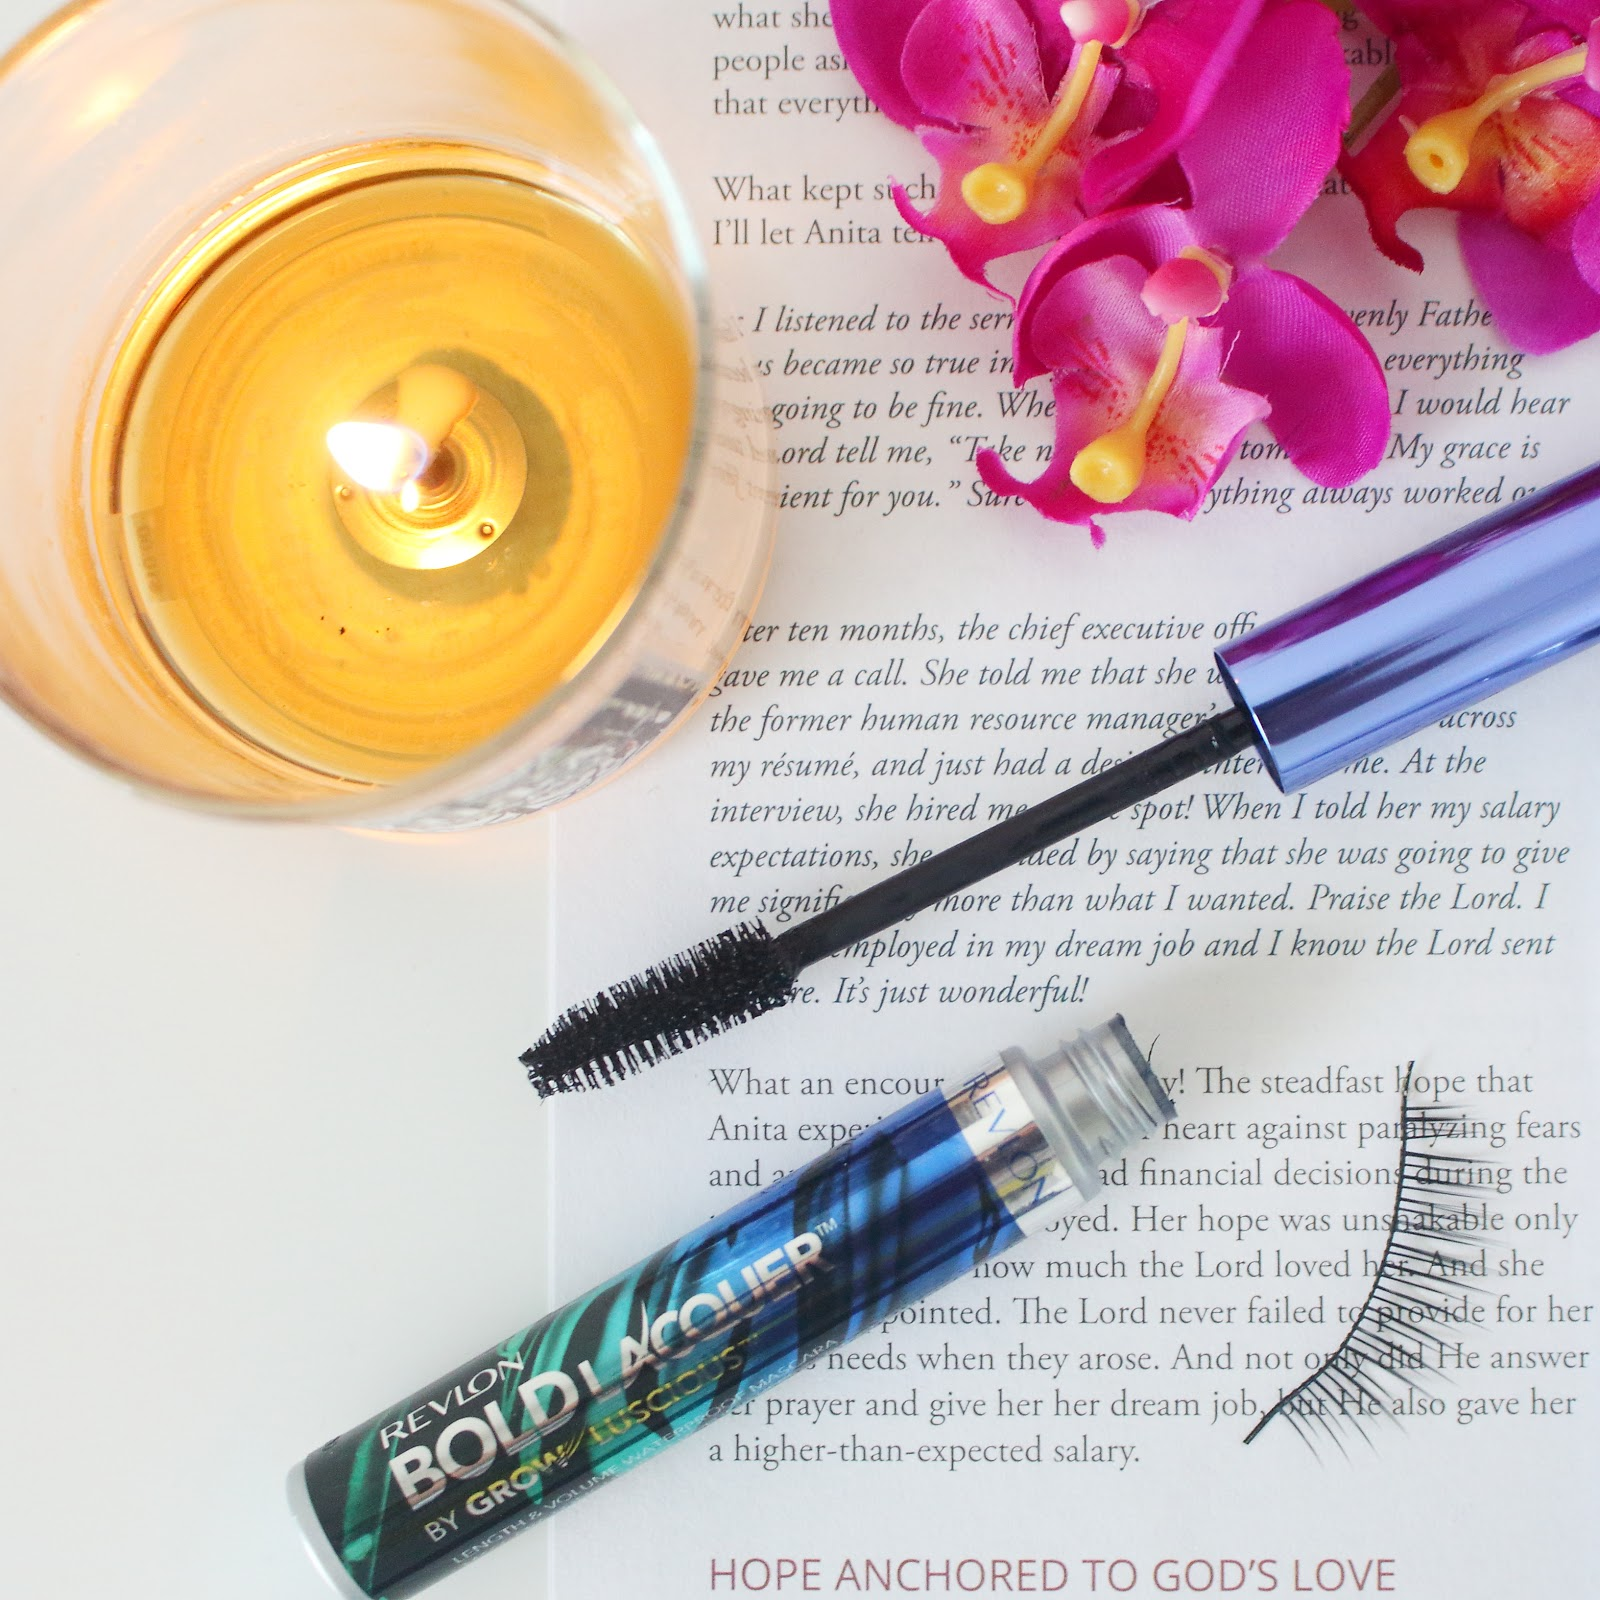 Revlon Bold Lacquer by Grow Luscious Length and Volume Waterproof Mascara in Blackest Black  Product Review